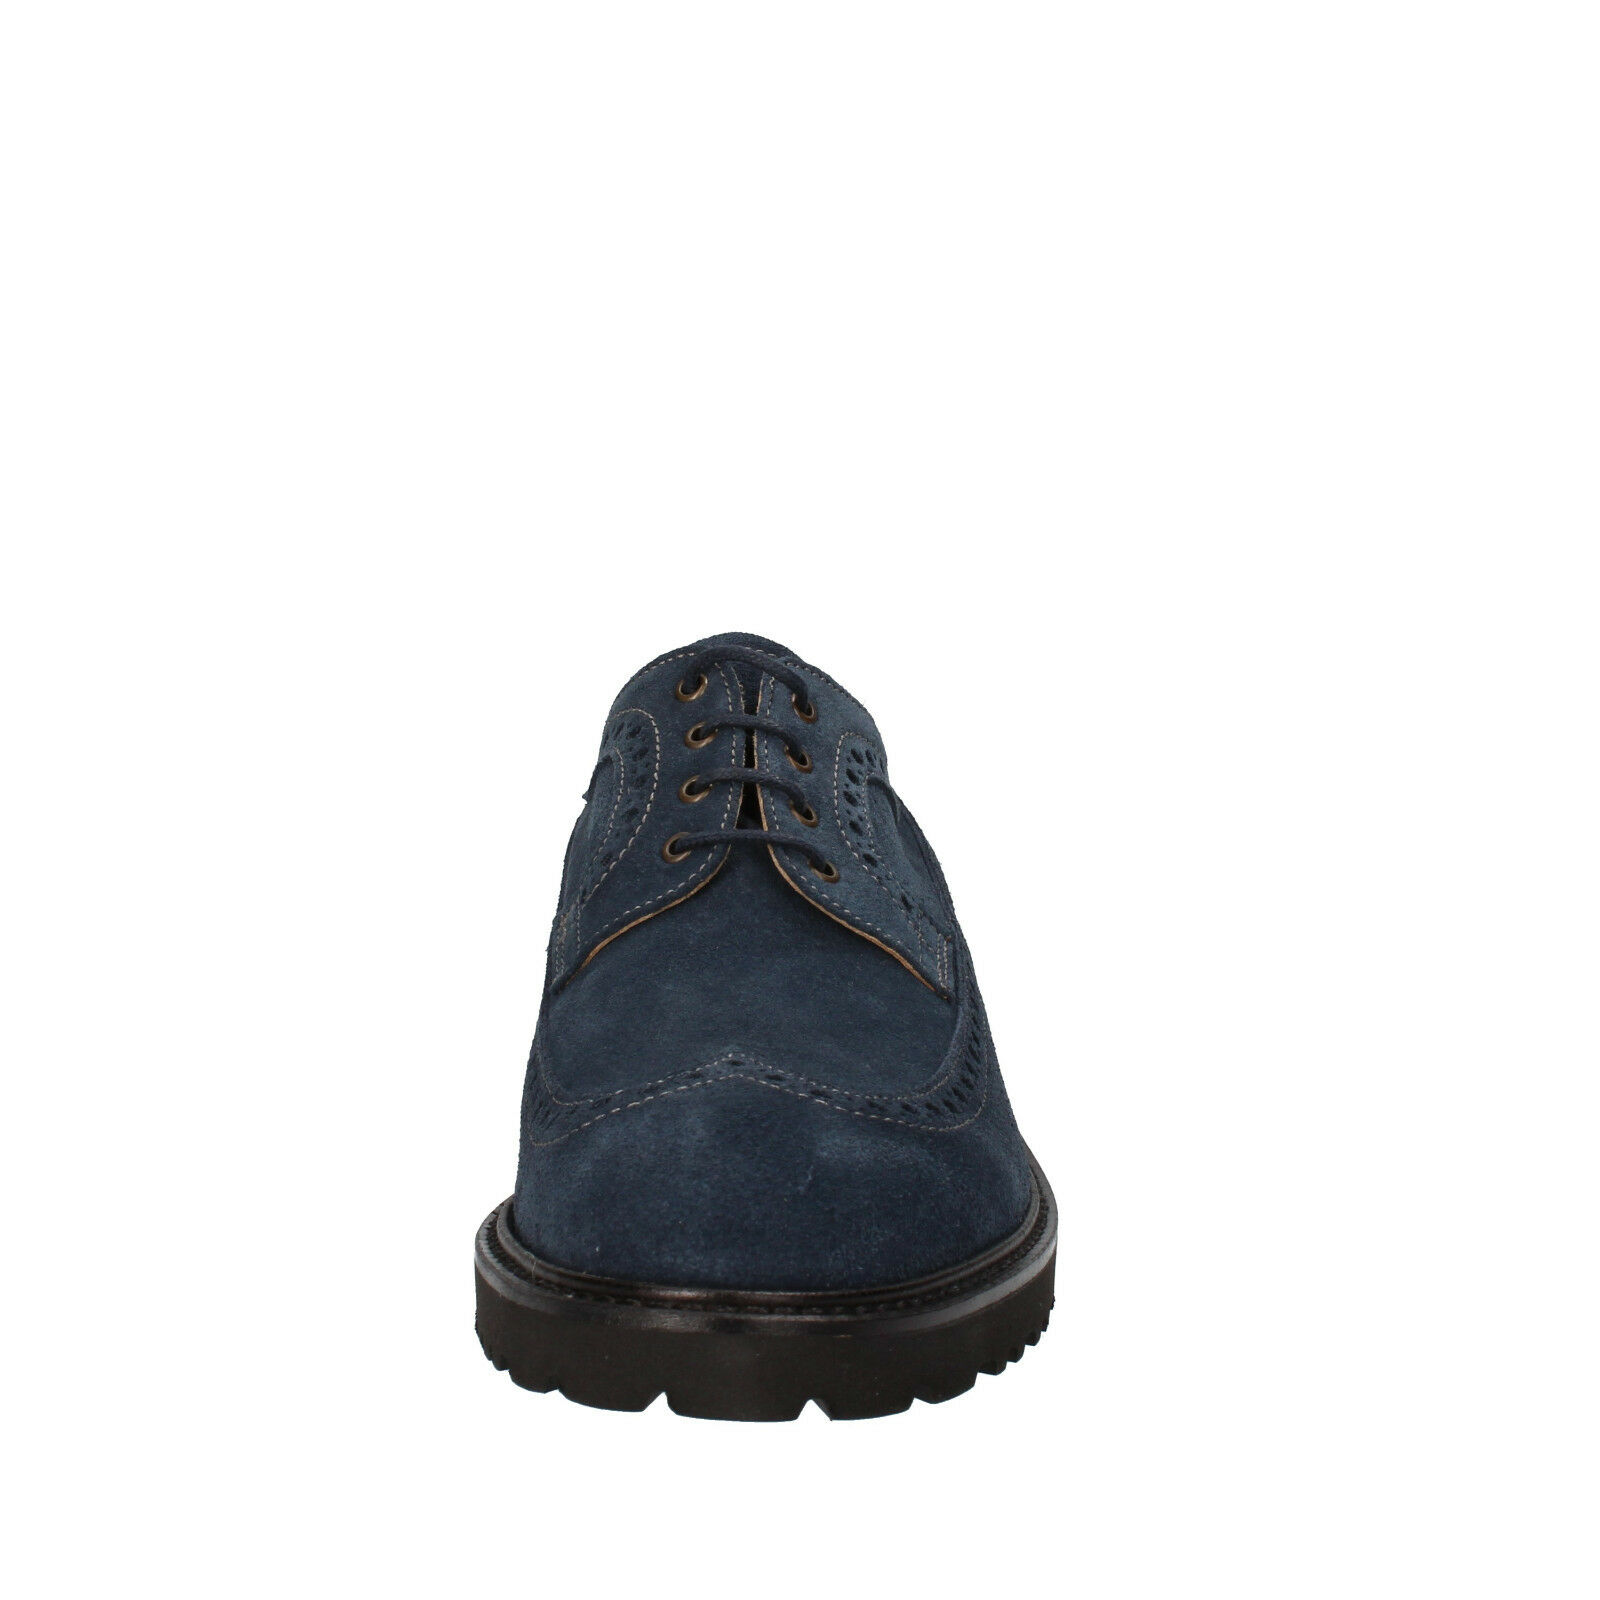 Scarpe casual da uomo  uomos shoes 39) EVOLUZION 6 (EU 39) shoes elegant / oxford-shoes blue suede AD260-B 342307